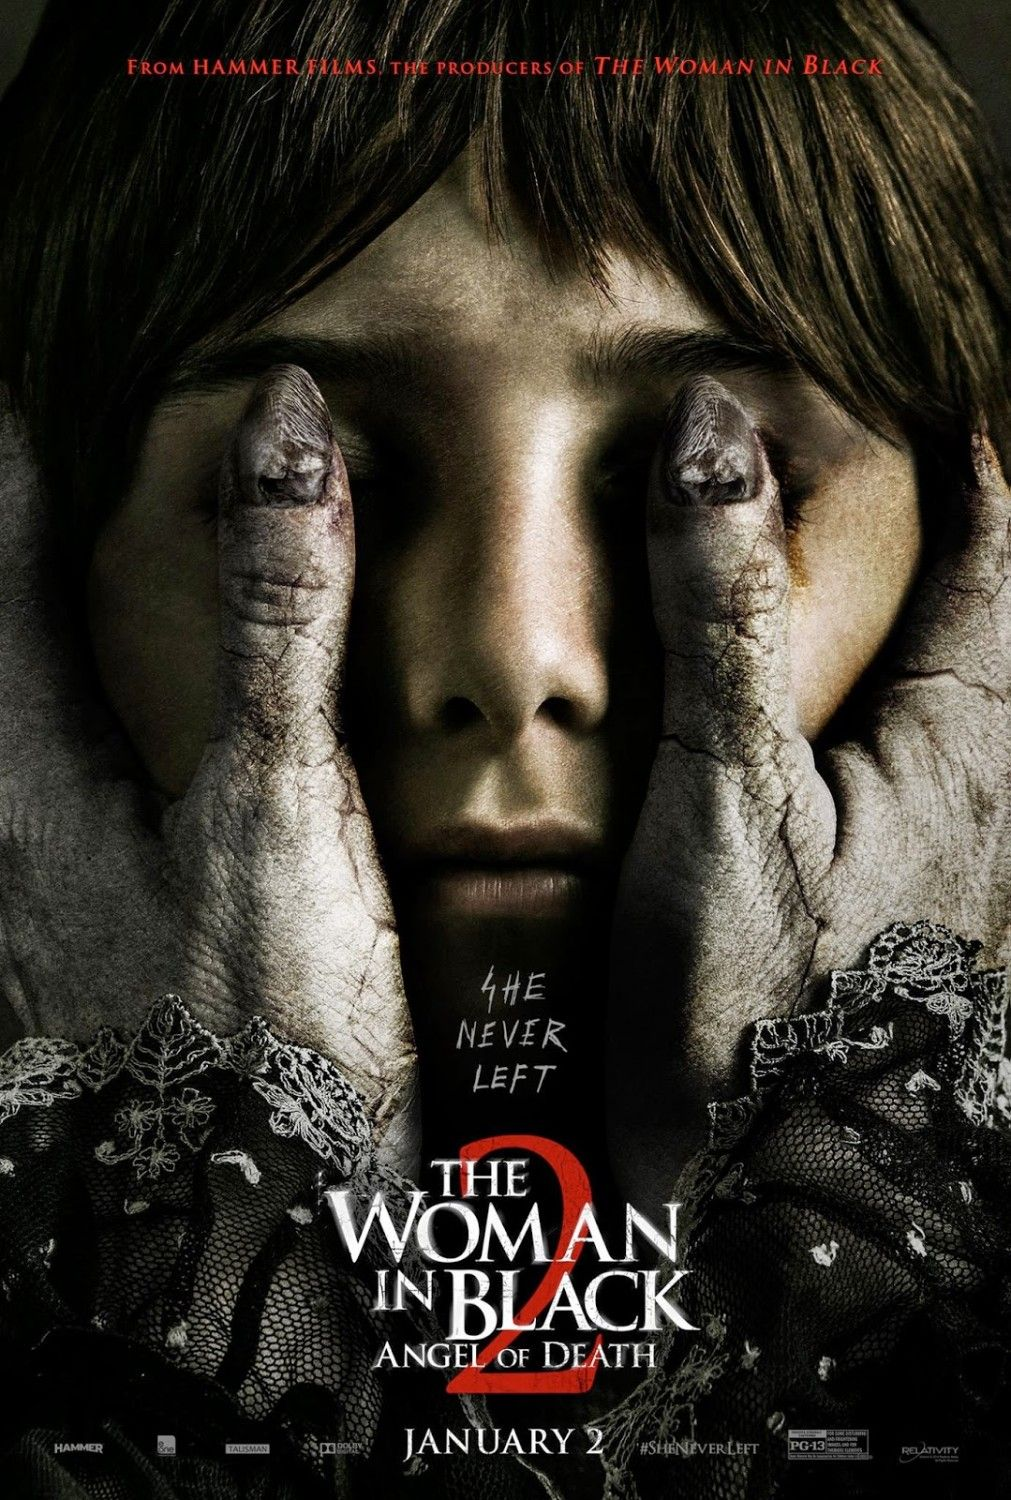 the woman in black 2: angel of death - movie posters | horror-today